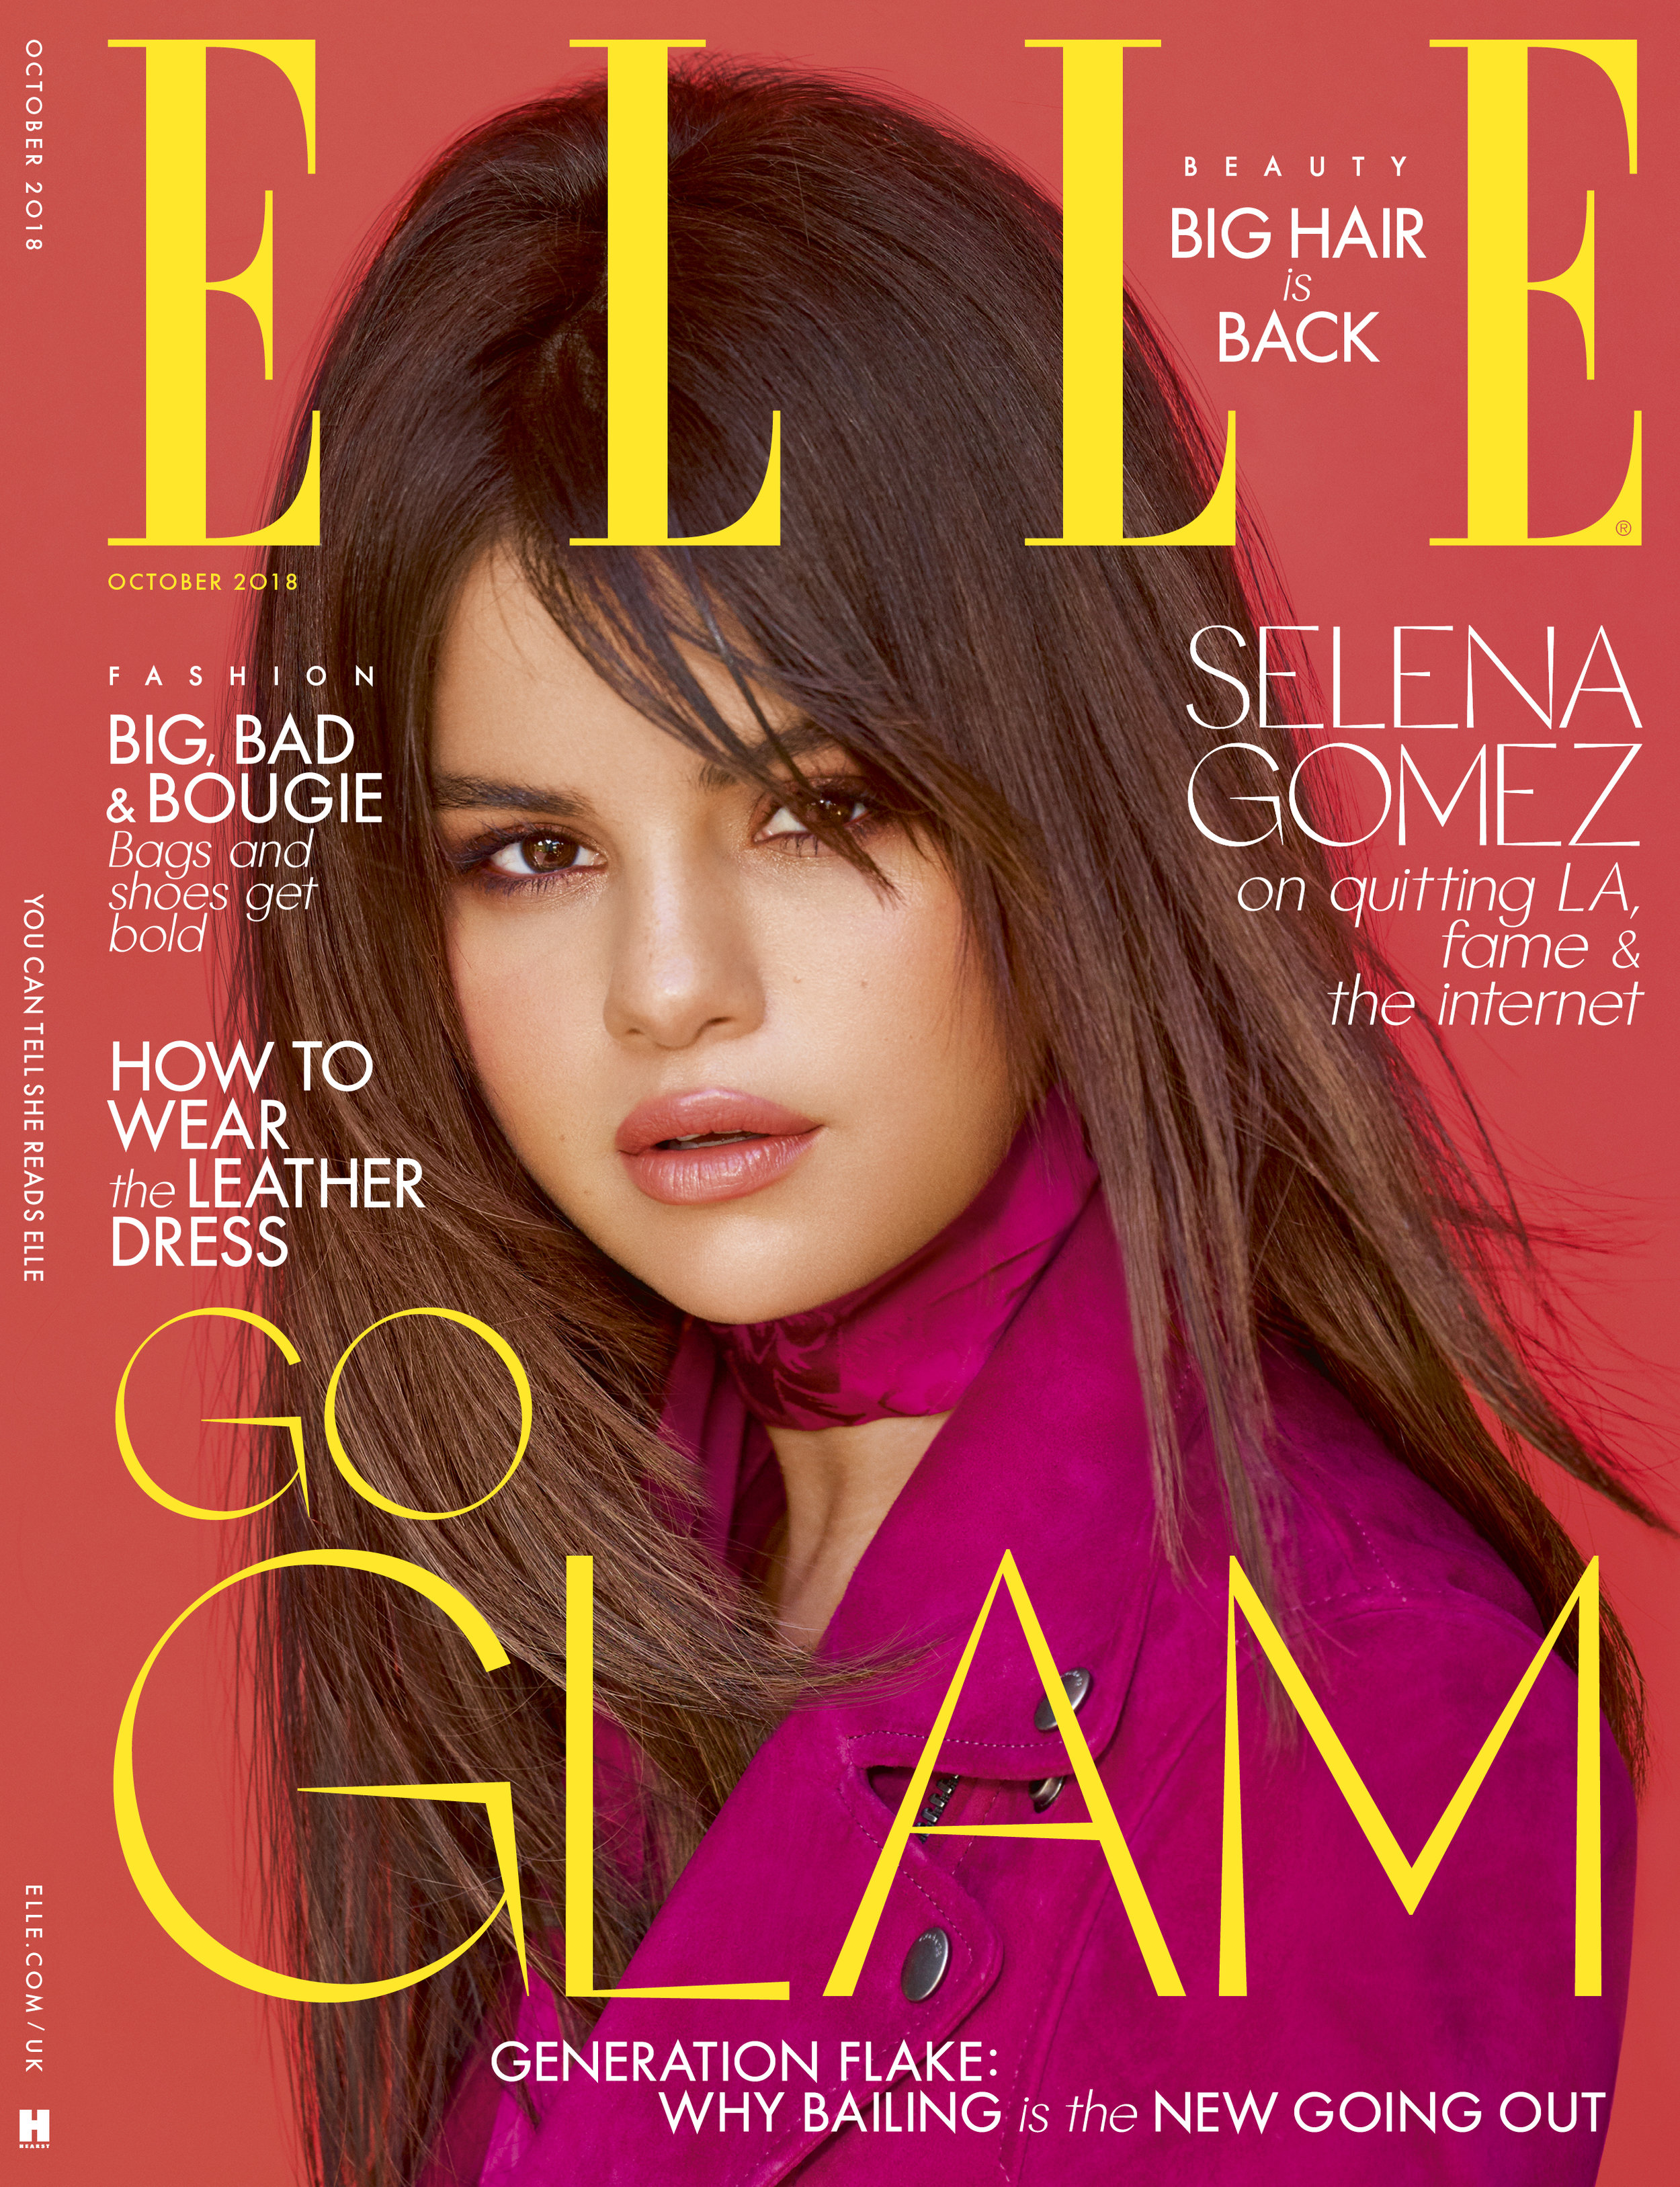 ELLE OCTOBER 2018 COVER.jpg